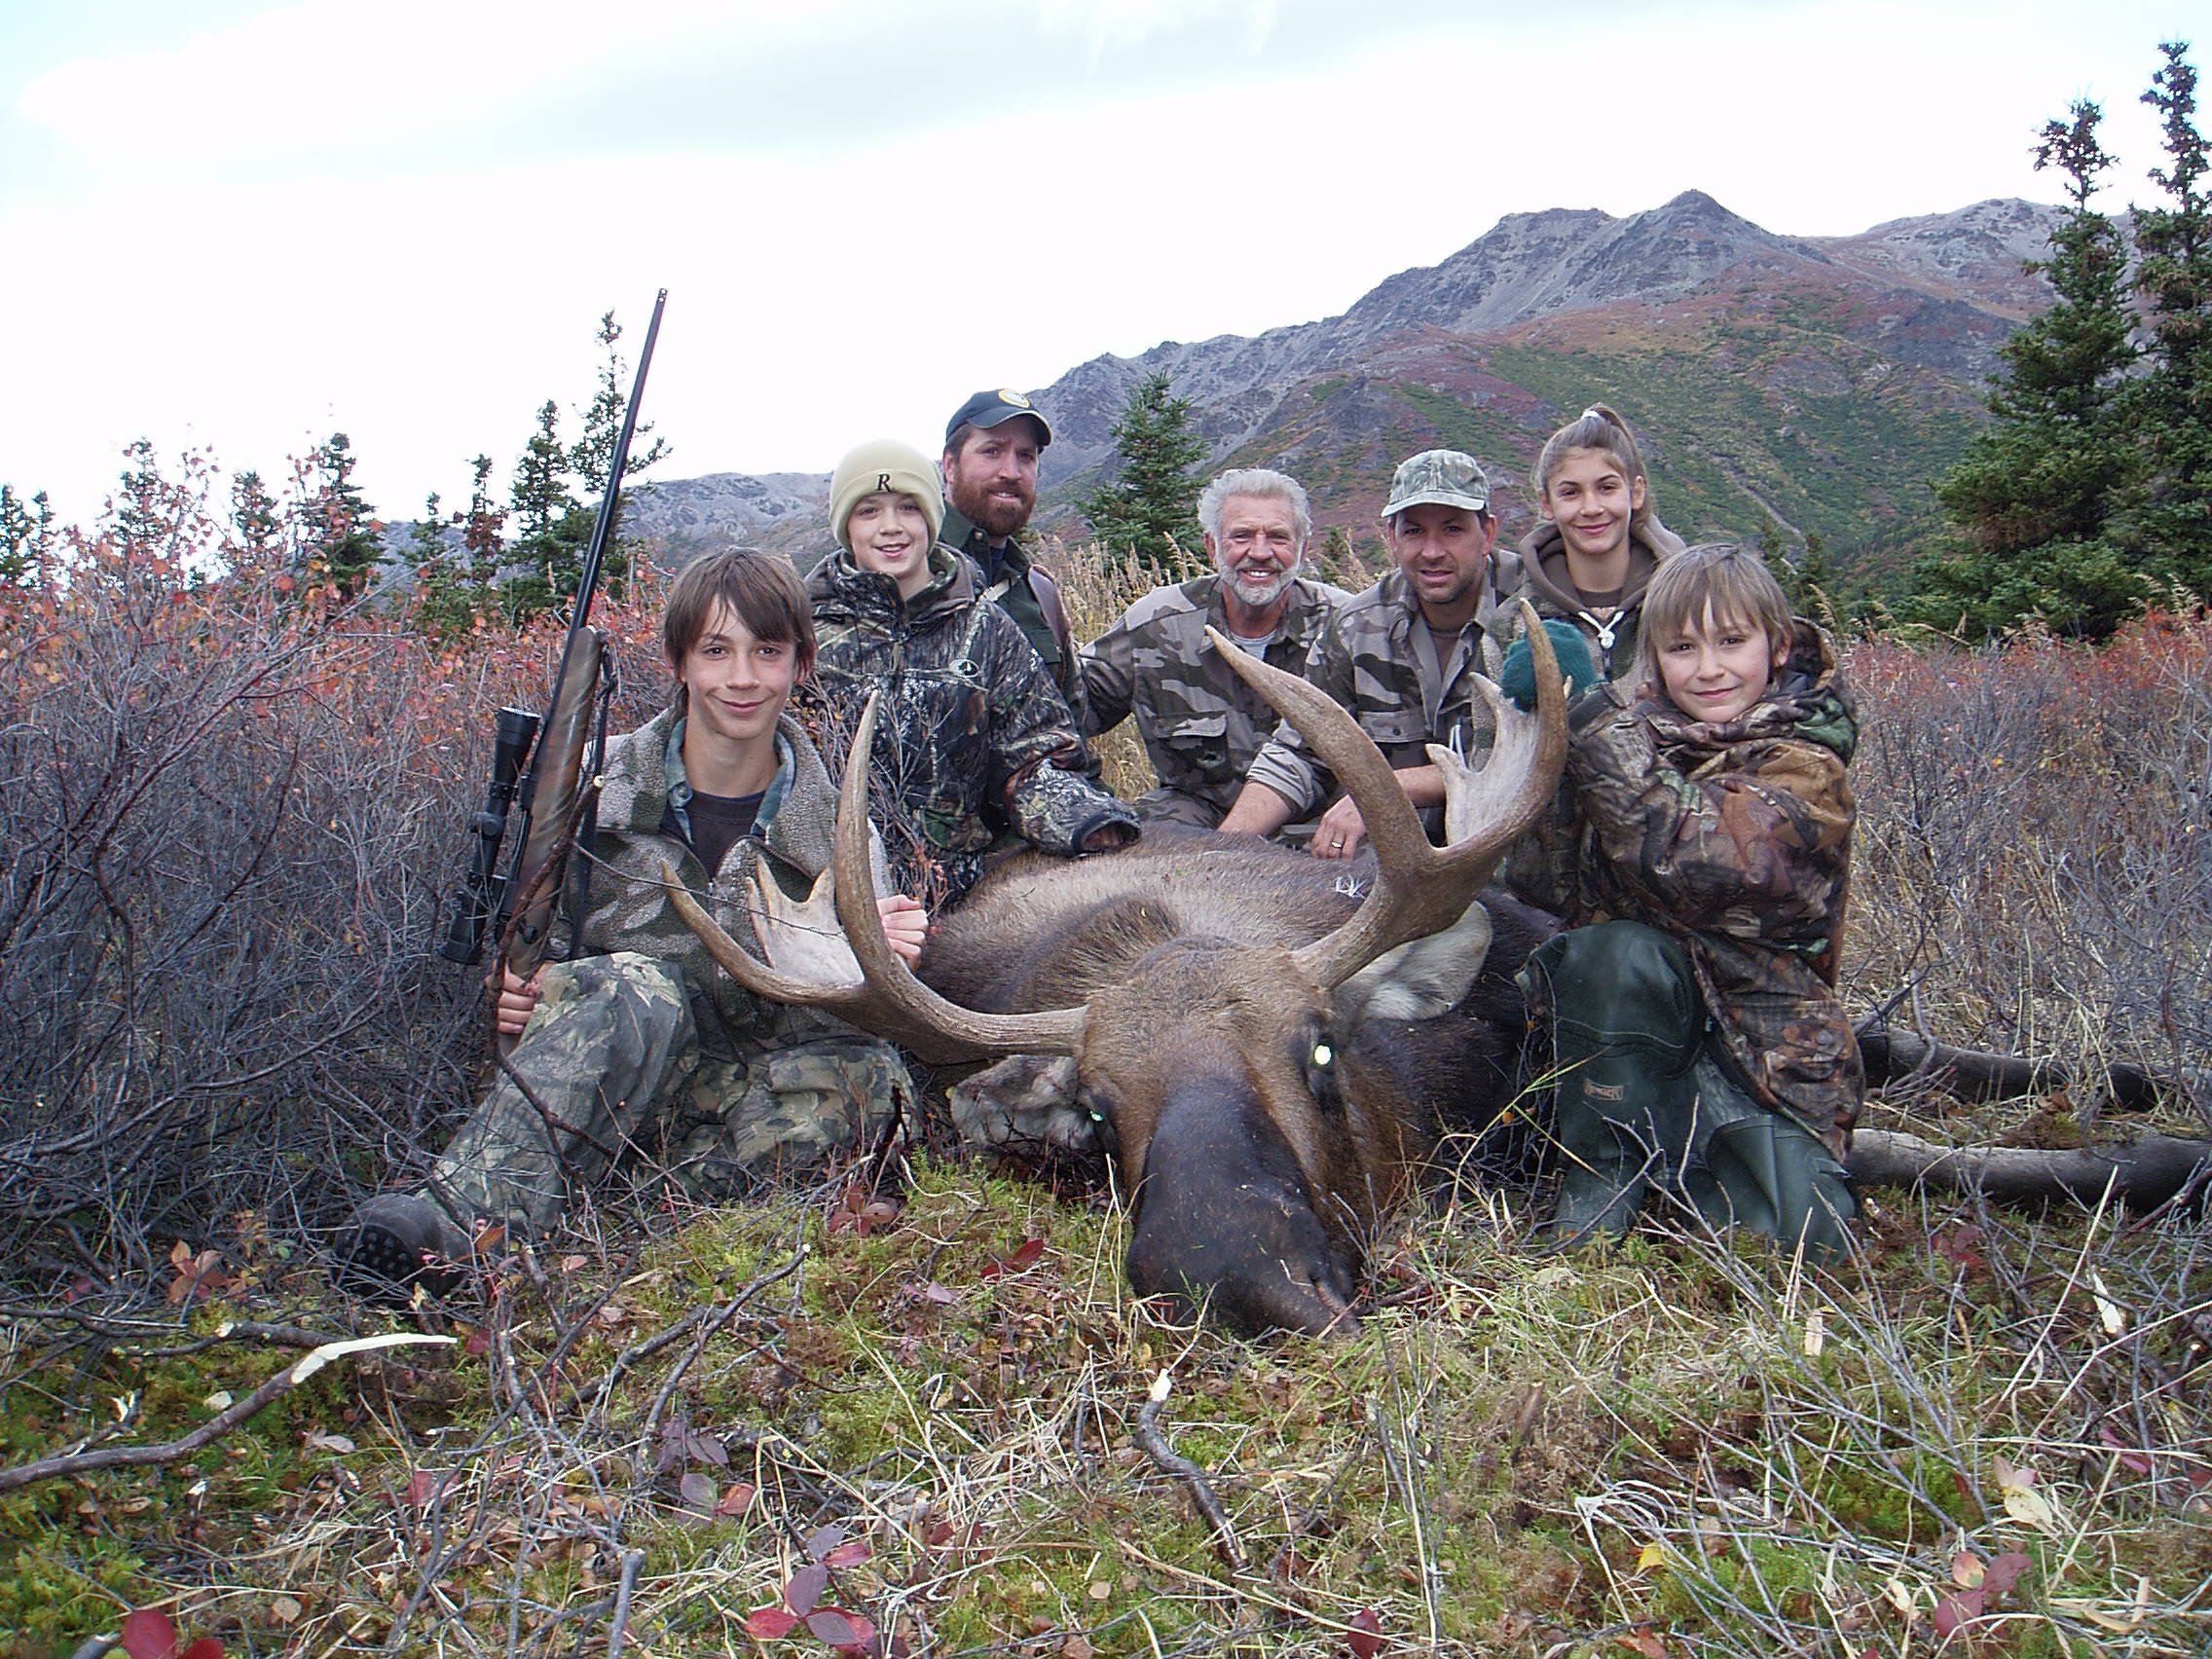 The gang with Jared's moose. (L to R) Jared, Jens, Thor, myself, Sagen, Rachel and Nathan.